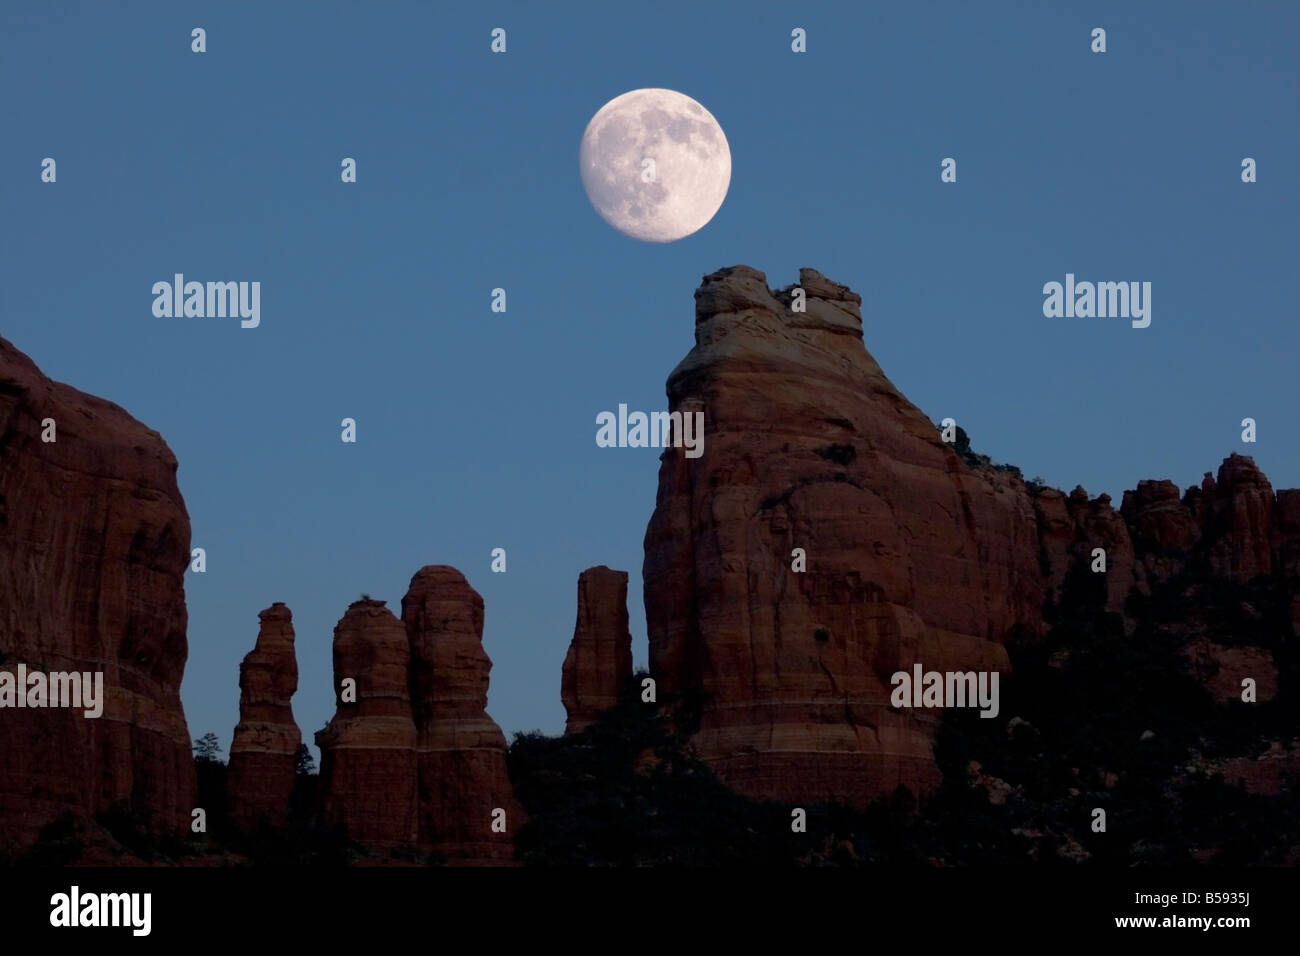 a nearly full moon rises over red rock spires near Sedona Arizona - Stock Image